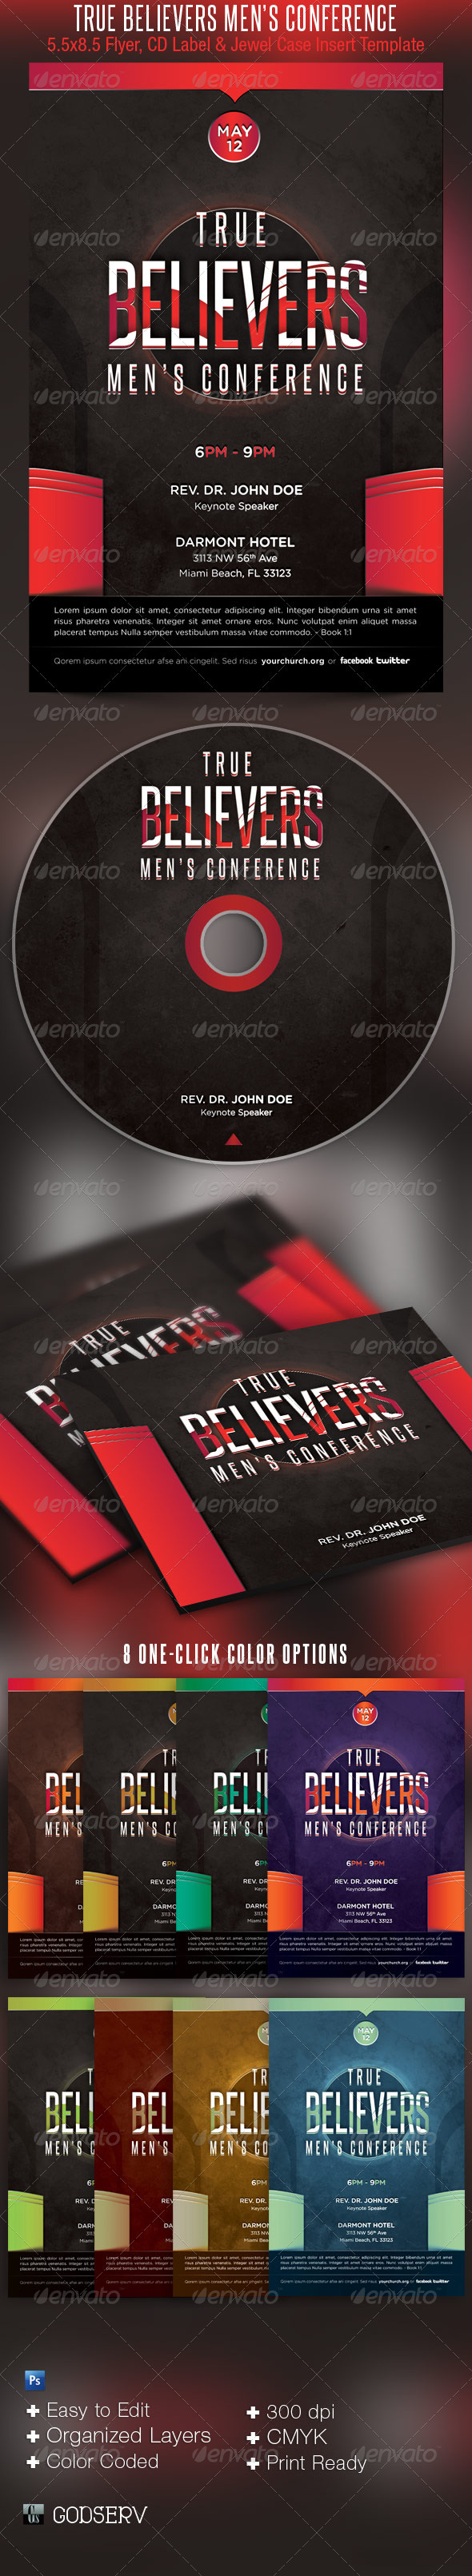 Men Church Conference Flyer CD Template - Church Flyers